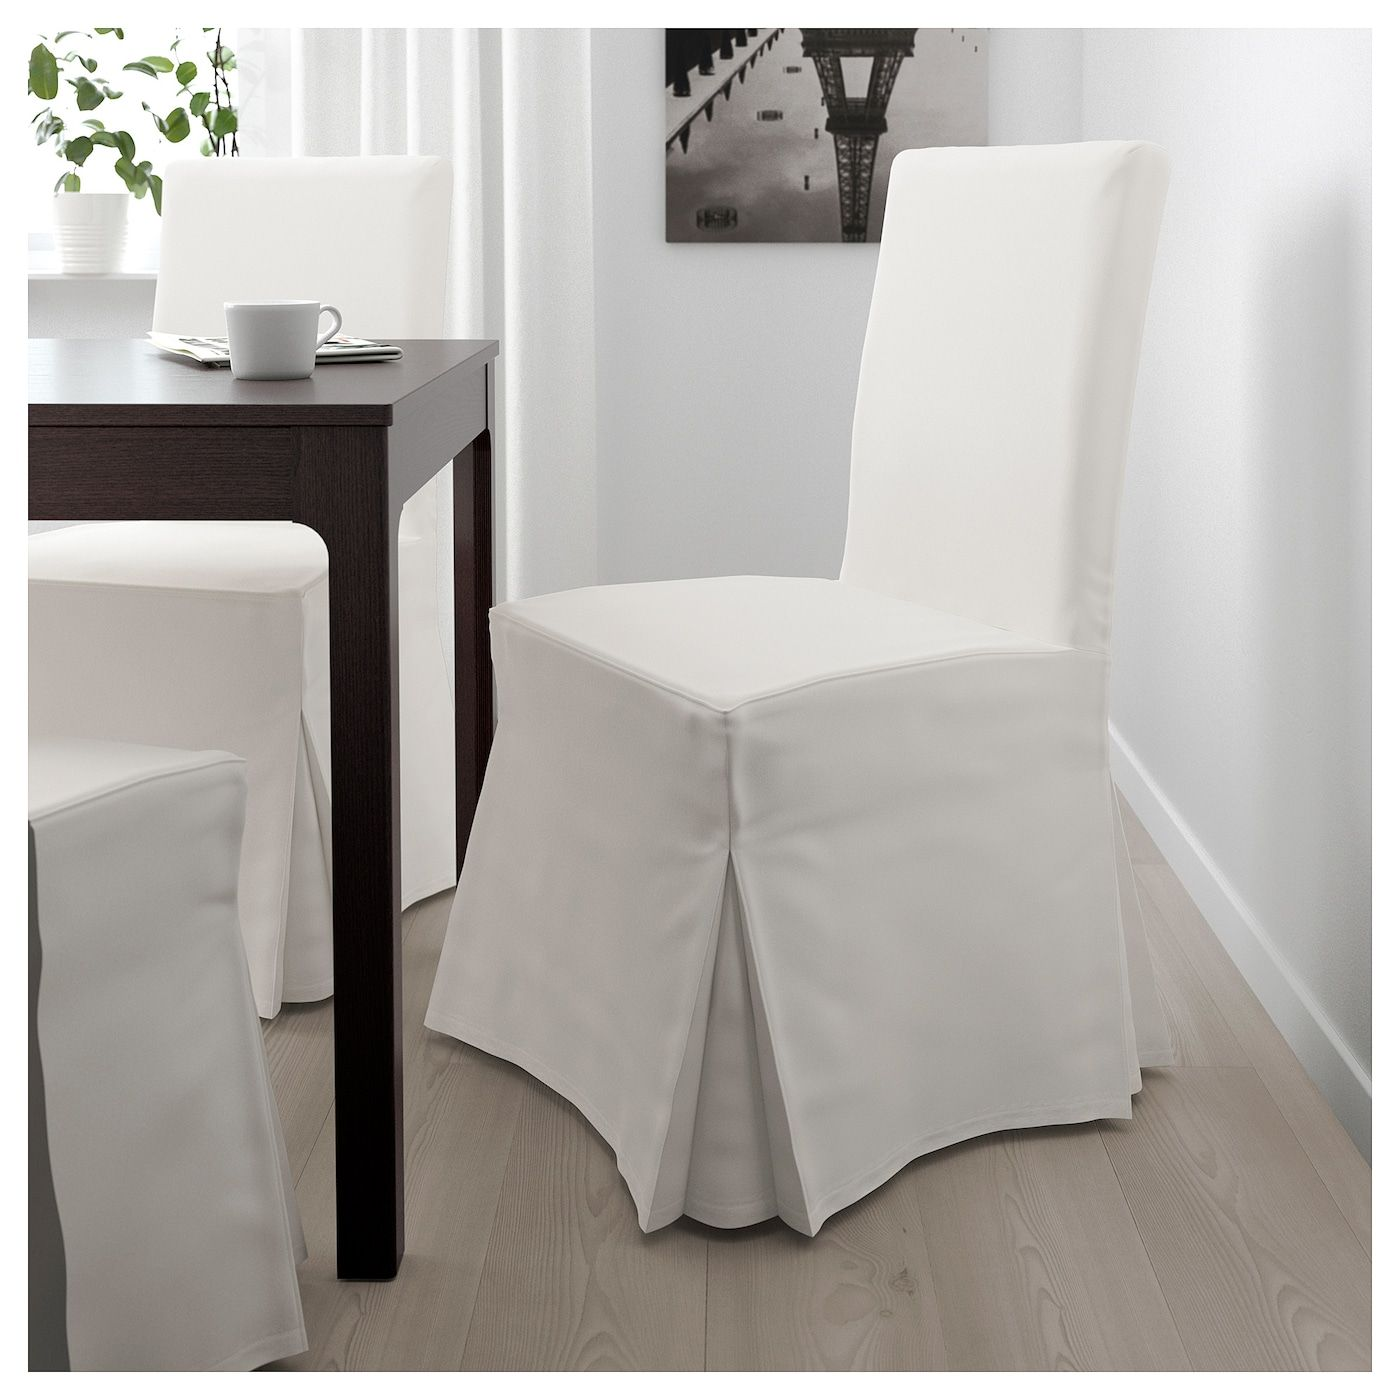 HENRIKSDAL Chair with long cover, Blekinge white. Find it